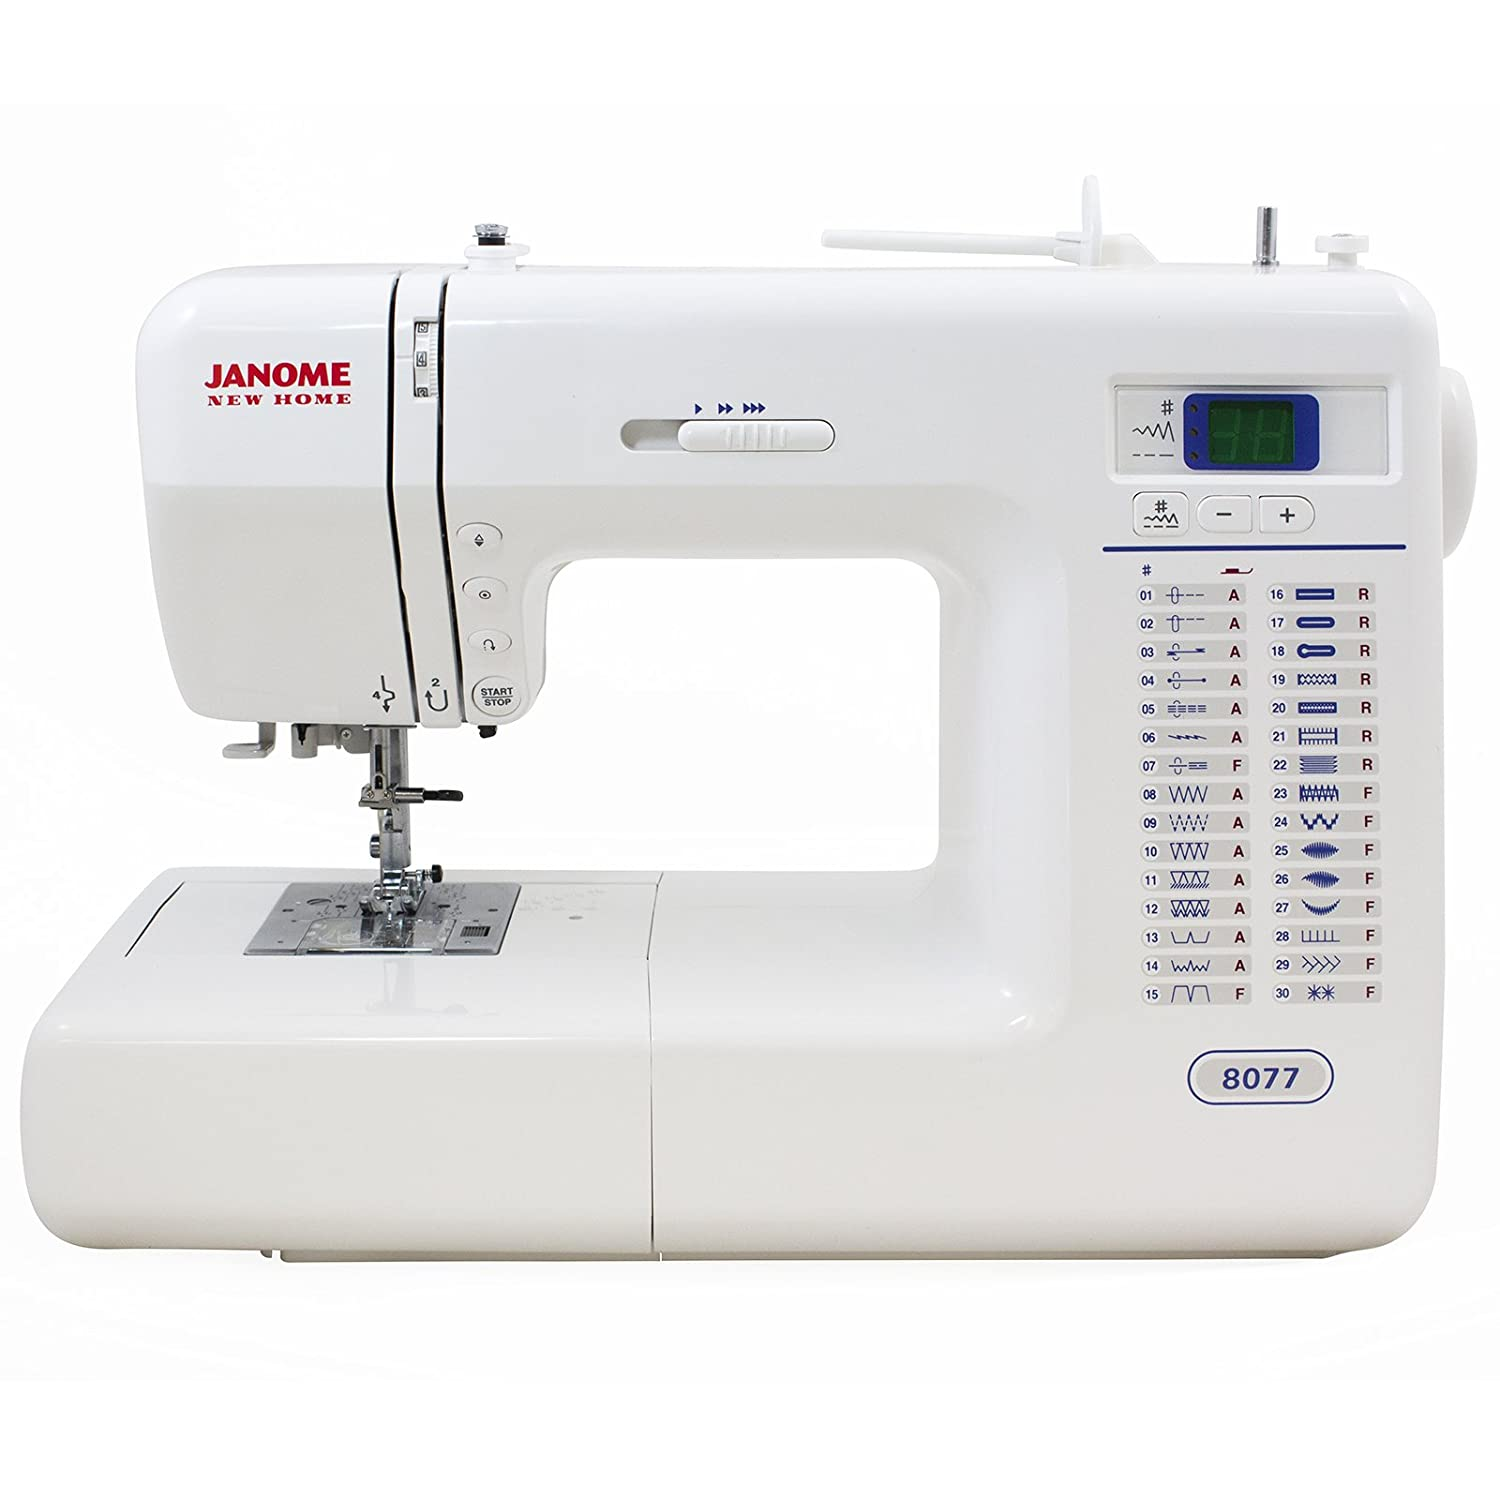 Top 10 Best Computerized Sewing Machines Reviews in 2020 8